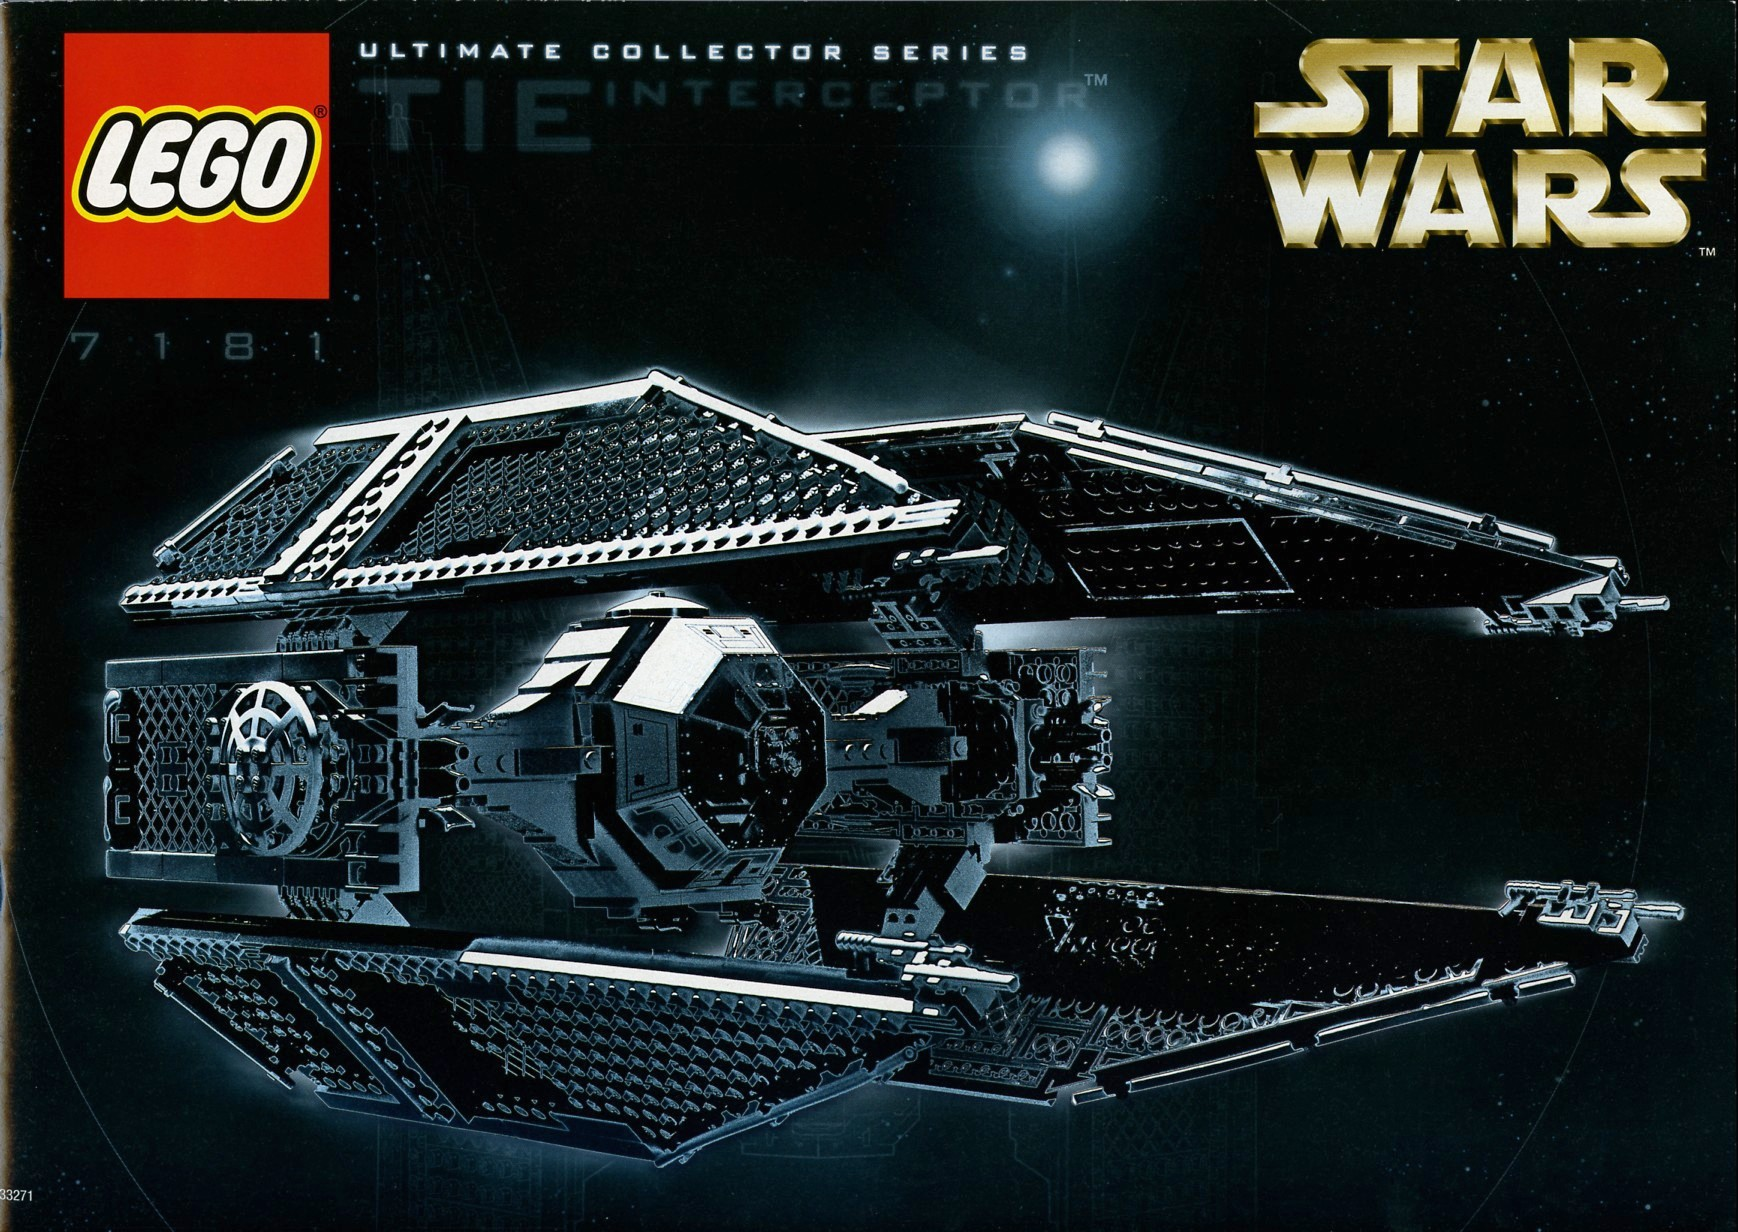 Star Wars Ultimate Collector Series Brickset Lego Set Guide And